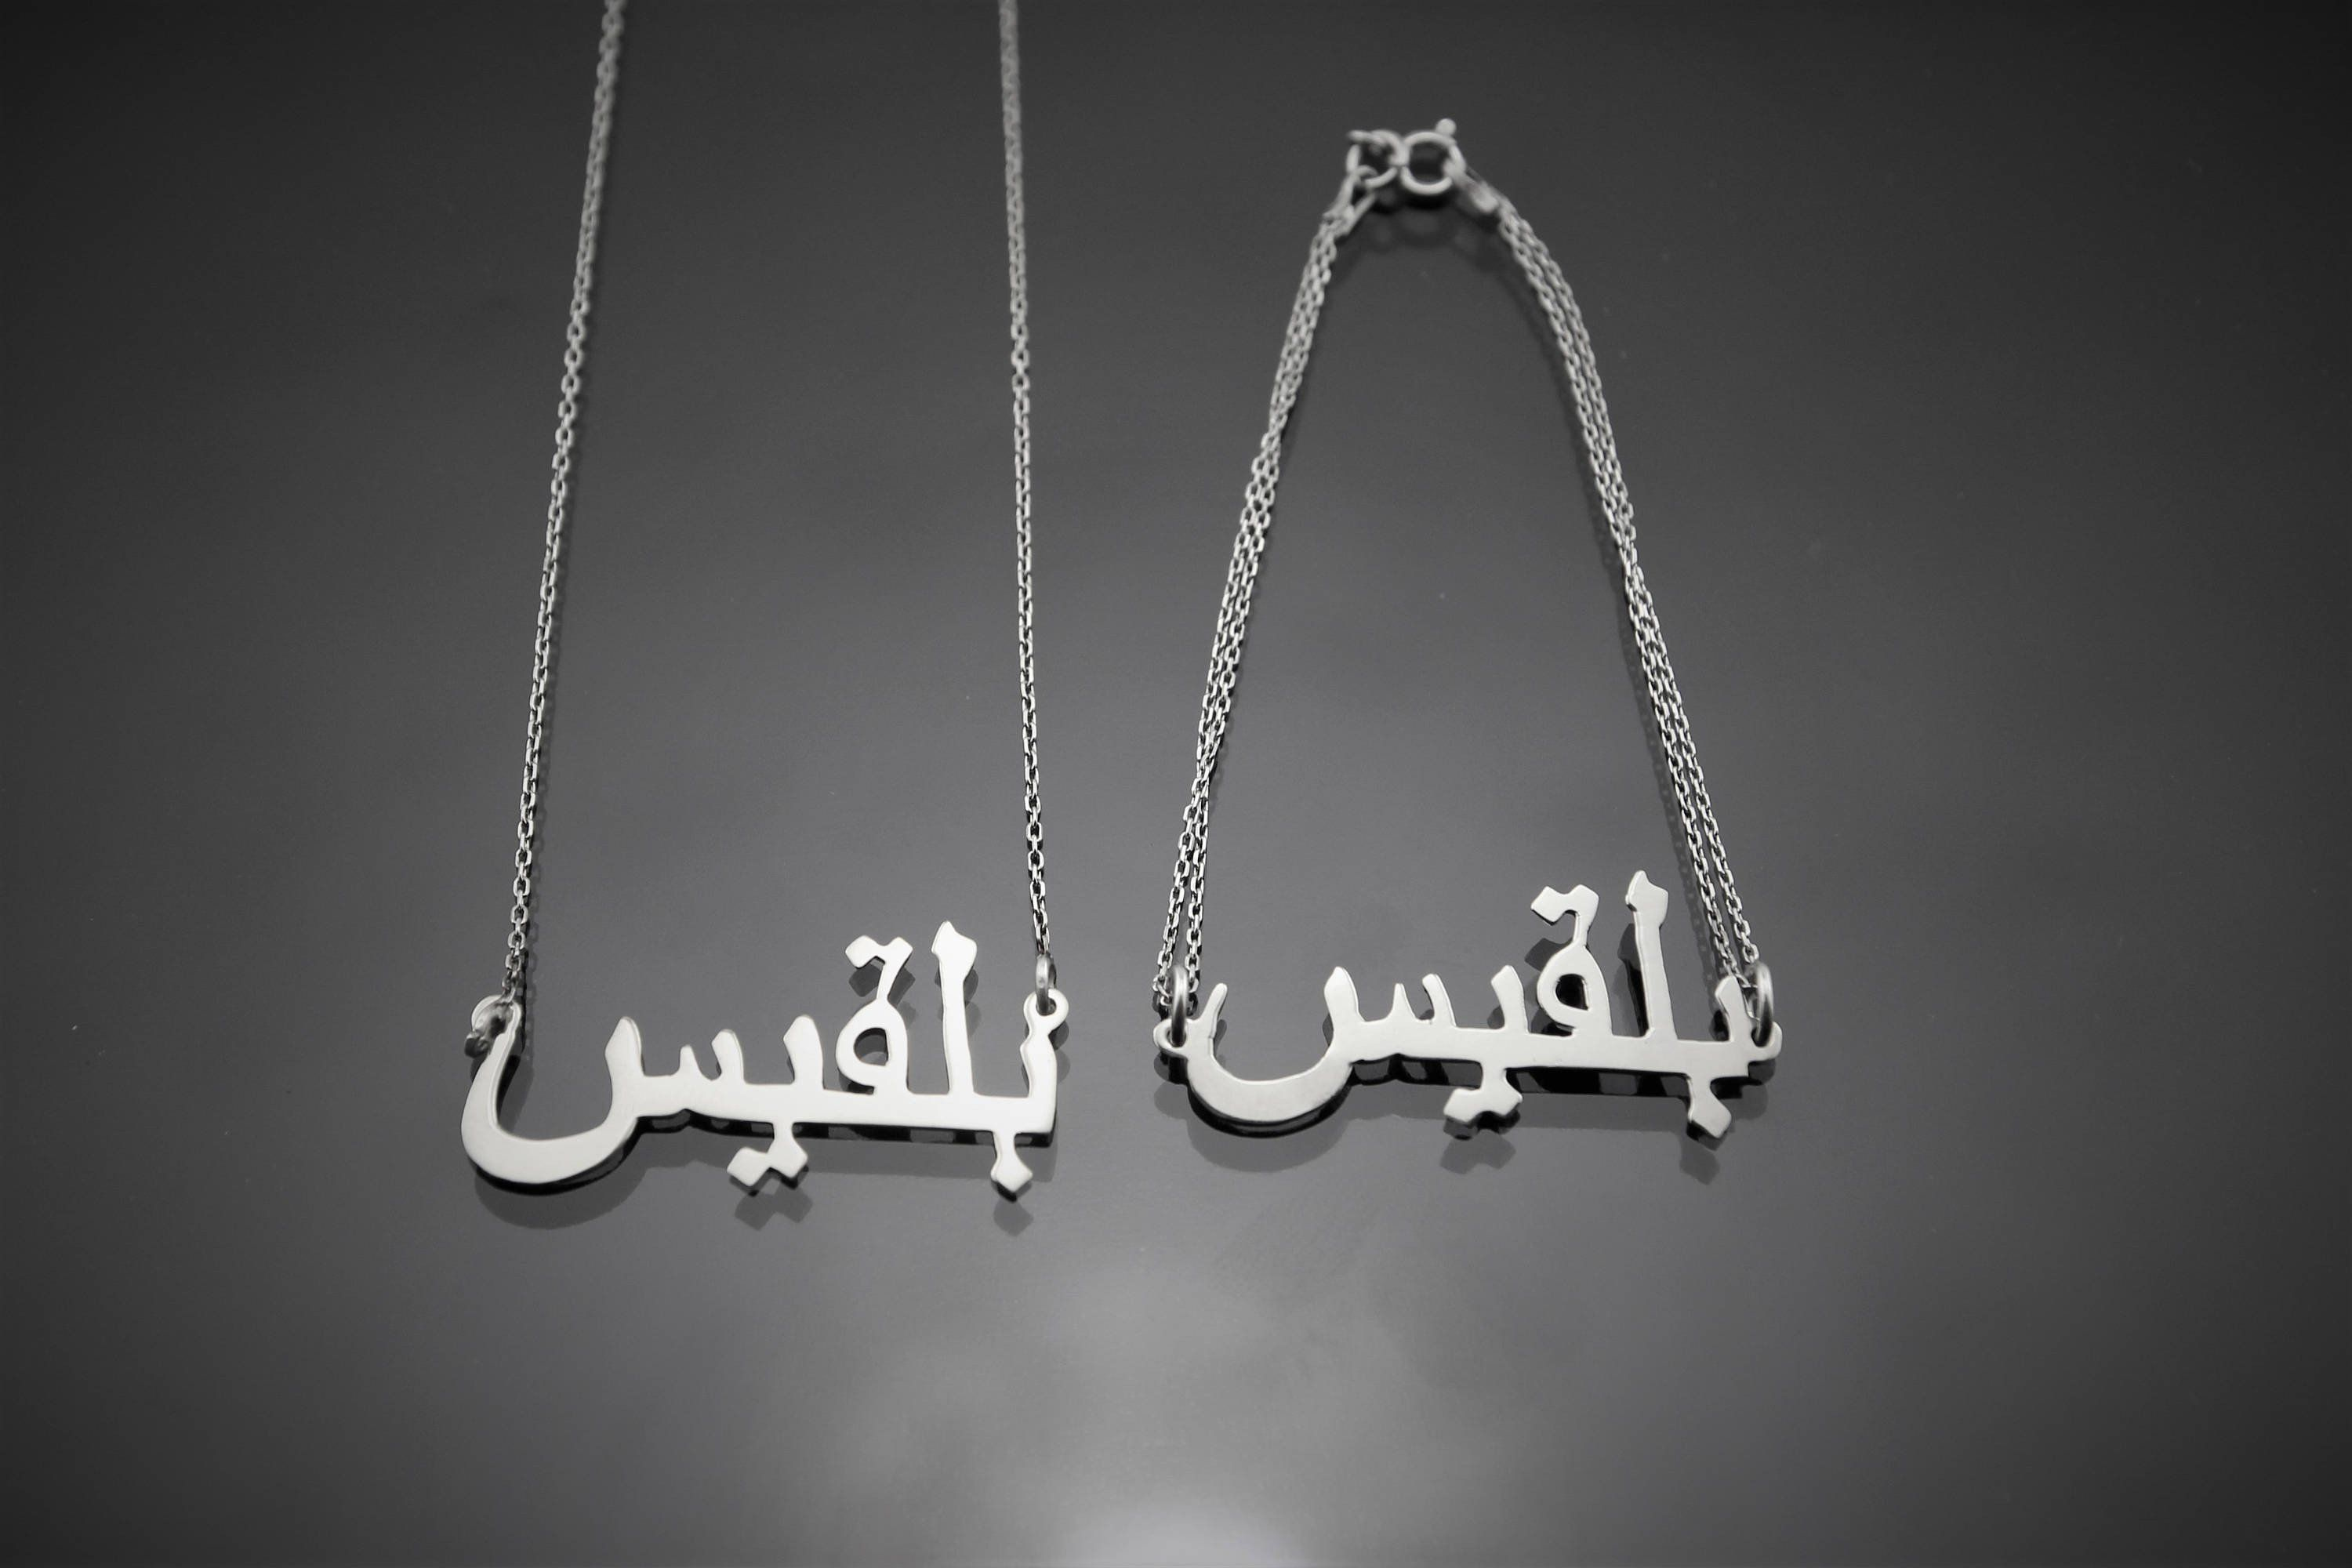 high verse men products shipping l chain it jewelry famous sam thick quality map palestine k necklace arabic fast a sterling with silver